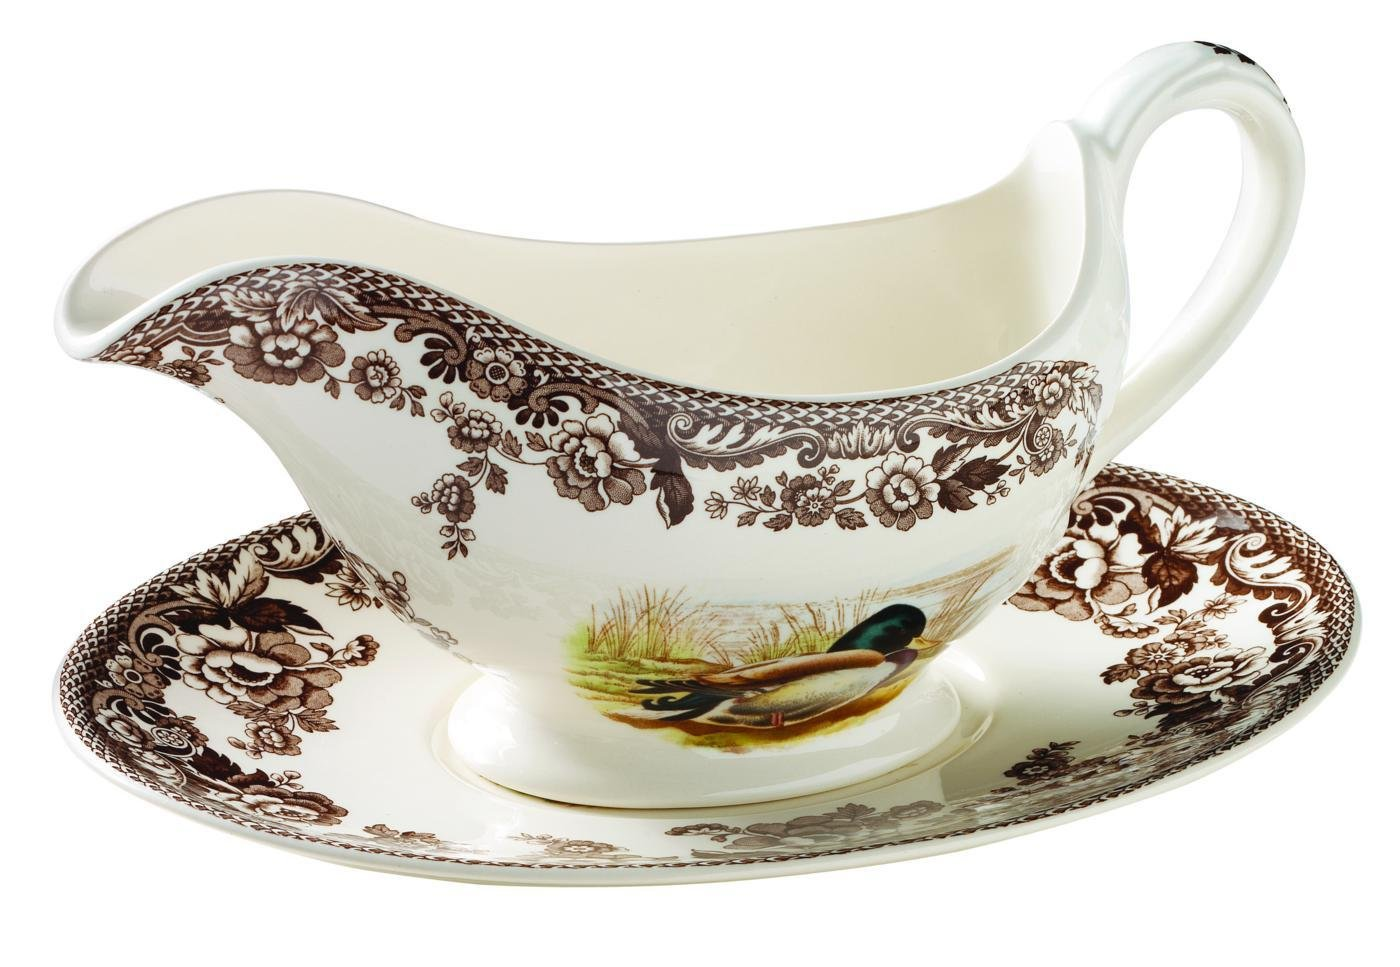 Spode Woodland Mallard, Snipe and Rabbit Sauceboat and Stand 1538339 DCBD RWCWDL 205